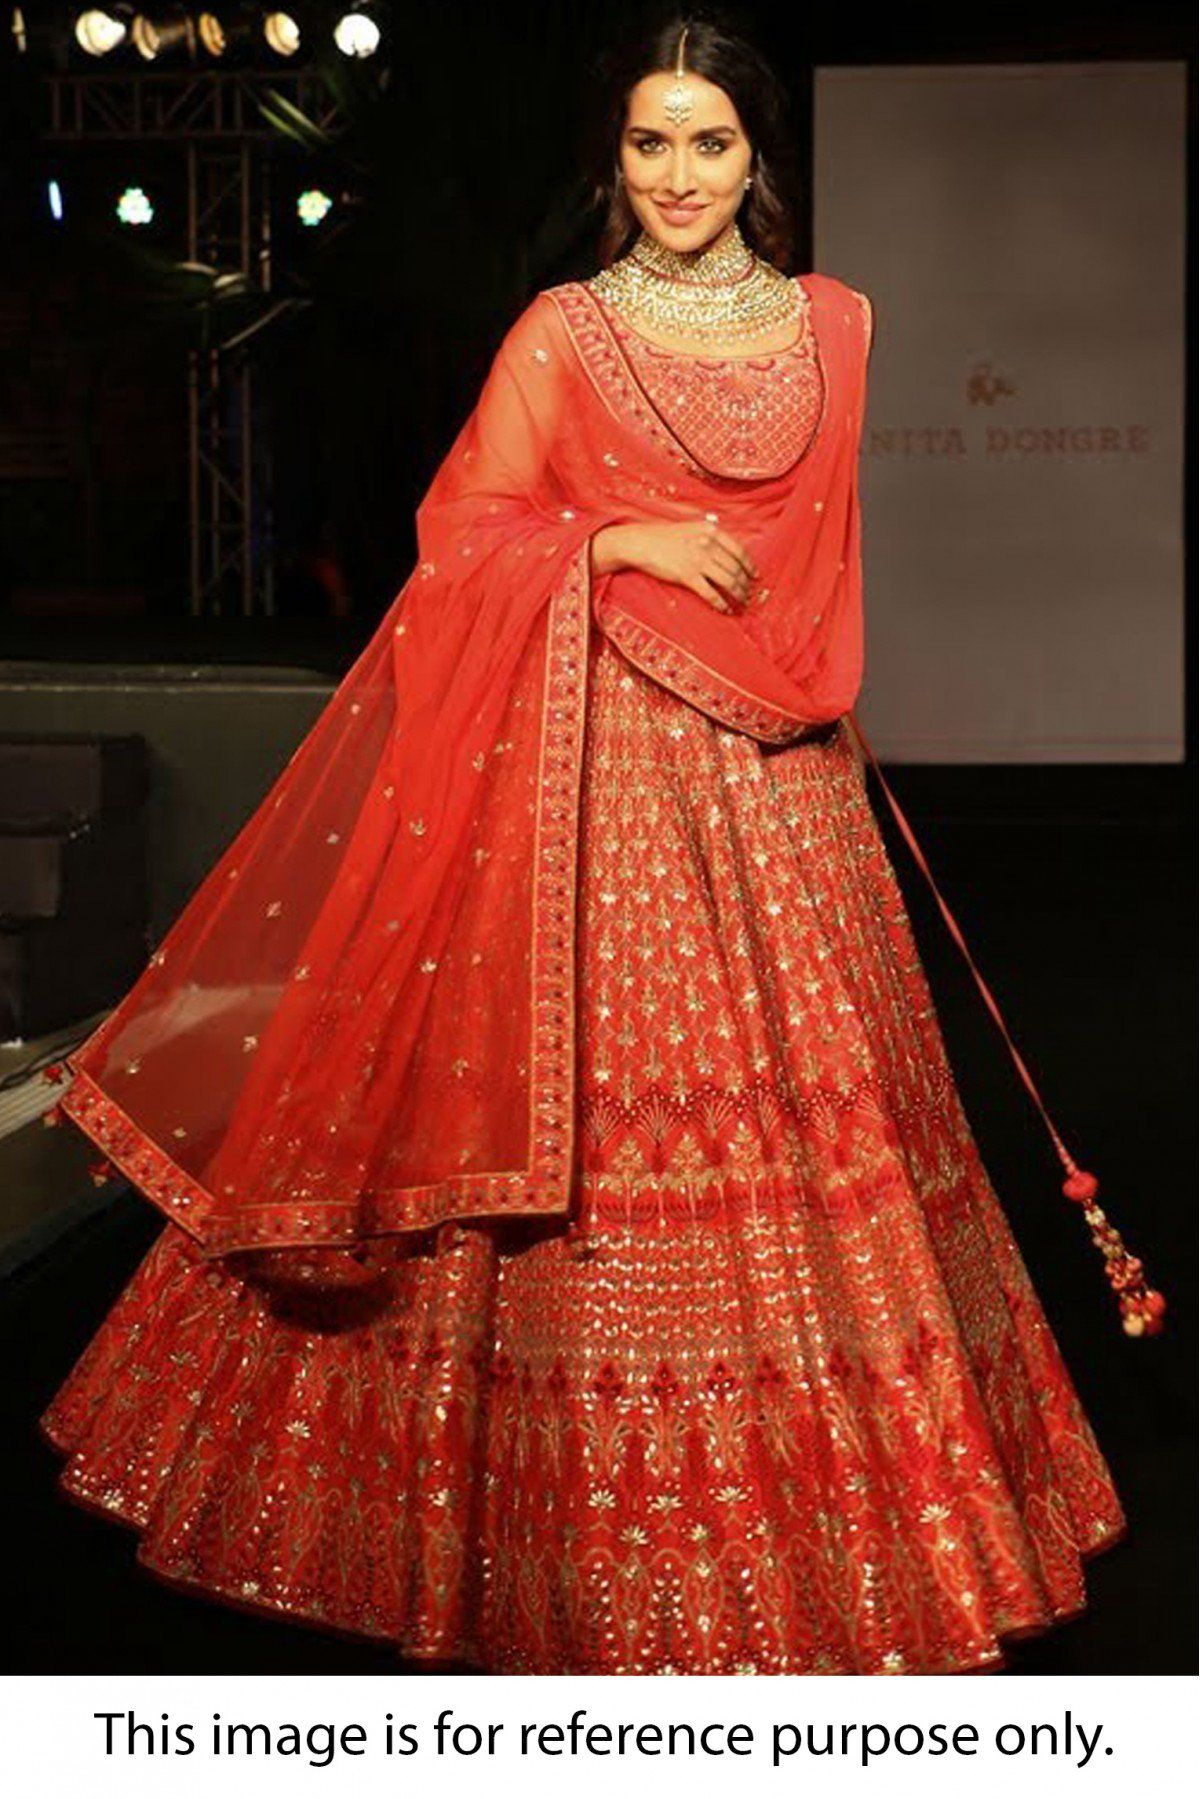 9c0c22cb82 Red Colour Taffeta Silk Fabric Party Wear Lehenga Choli Comes with matching  blouse. This Lehenga Choli Is crafted with Thread Work,Dori Work,Sequins  Work ...